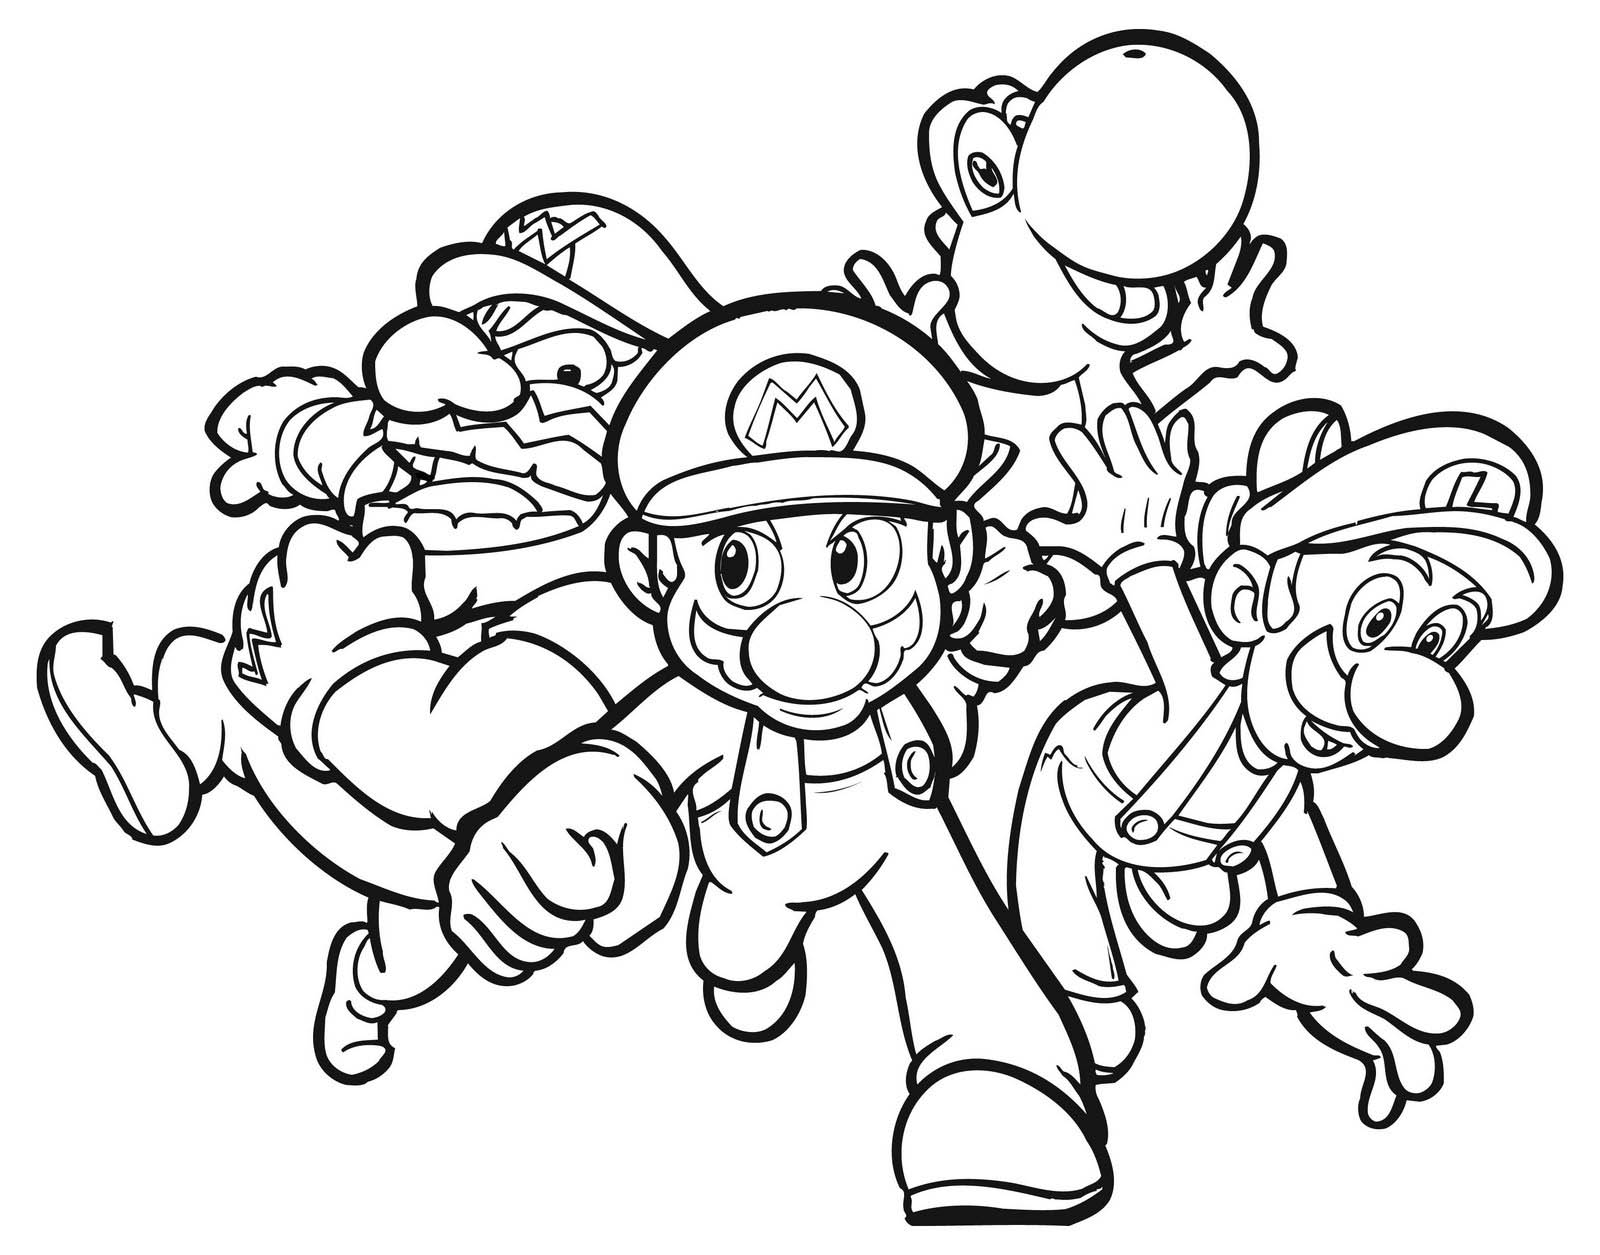 Characters Coloring Pages Free Printable Mario For Kids